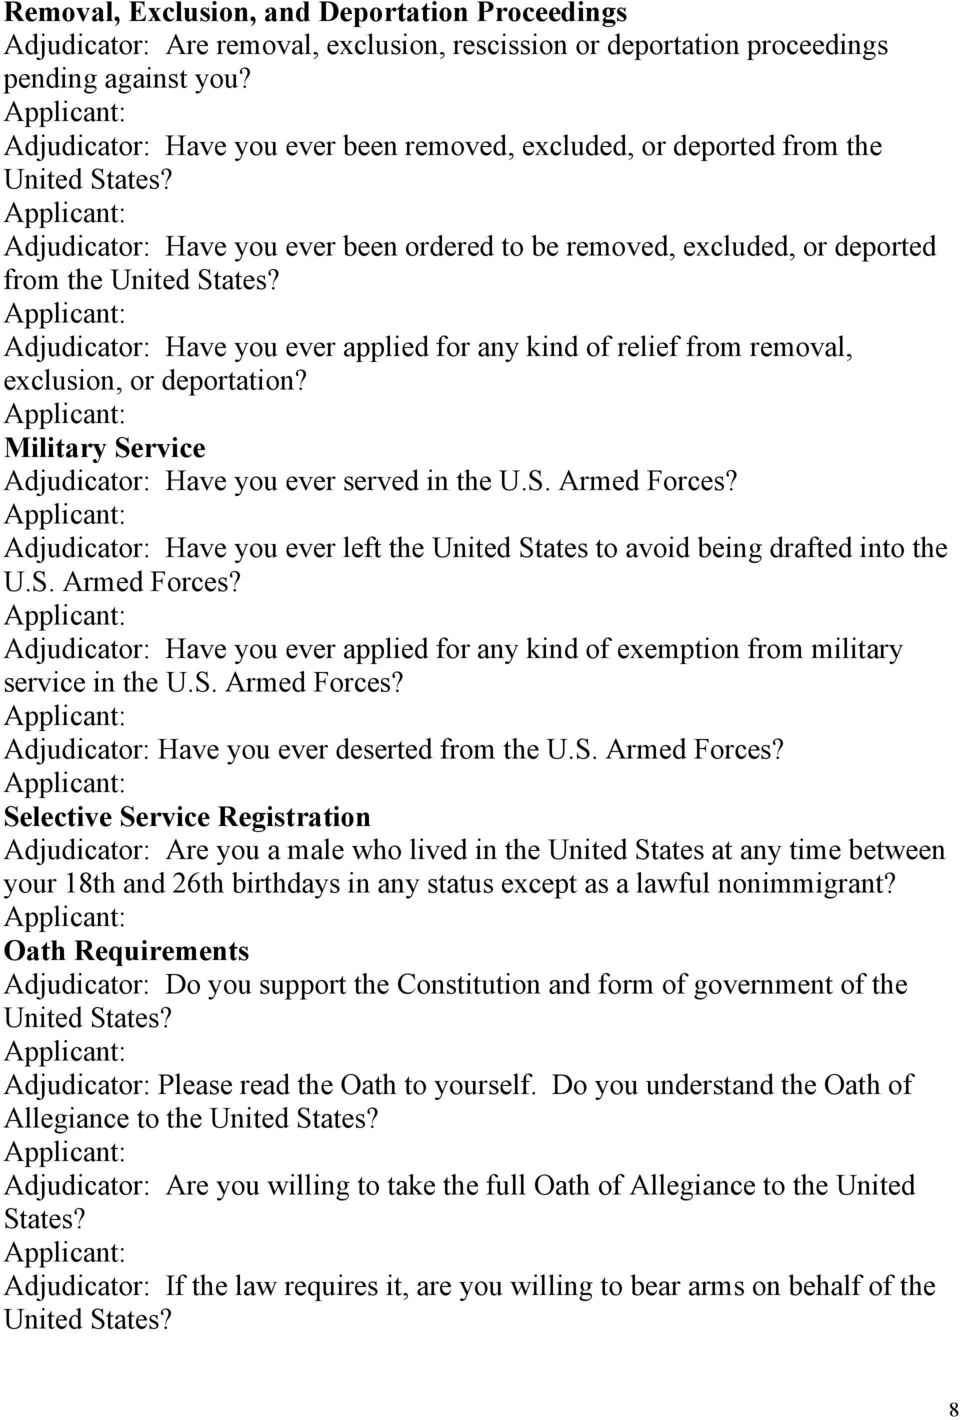 Adjudicator: Have you ever applied for any kind of relief from removal, exclusion, or deportation? Military Service Adjudicator: Have you ever served in the U.S. Armed Forces?